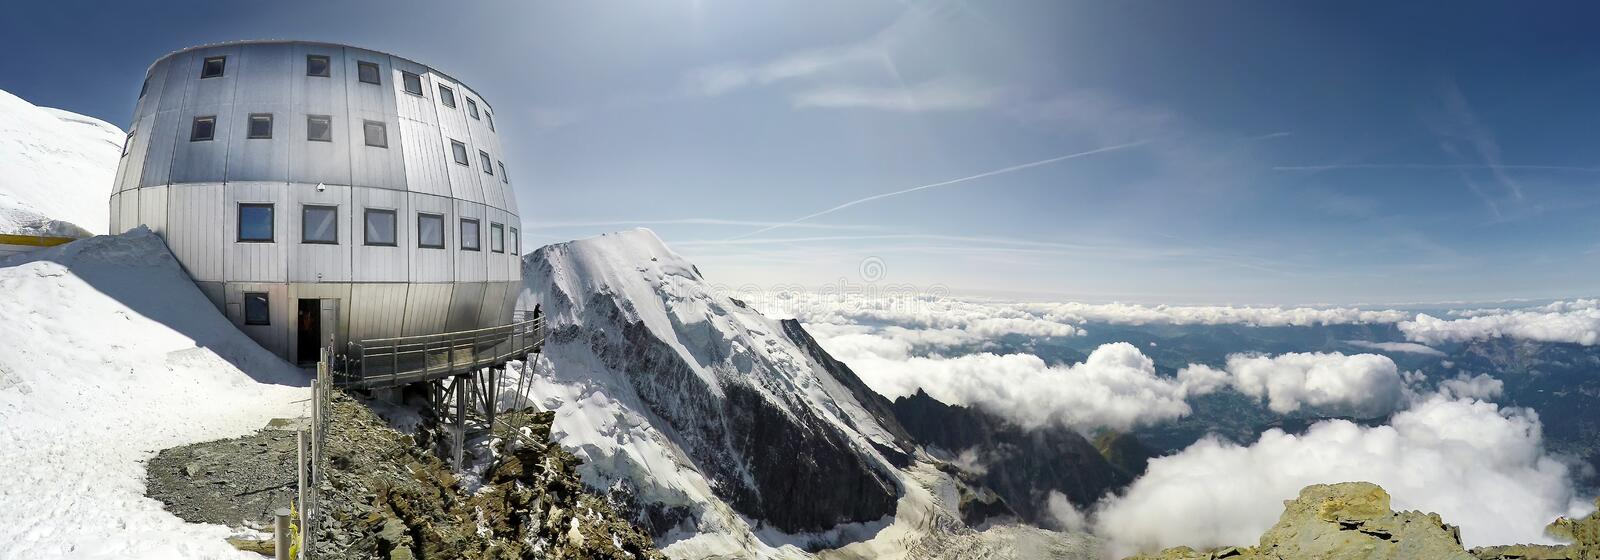 The popular starting point for attempting the ascent of Mont Blanc , France. Panorama of Refuge Du Gouter 3835 m, The popular starting point for attempting the royalty free stock photo